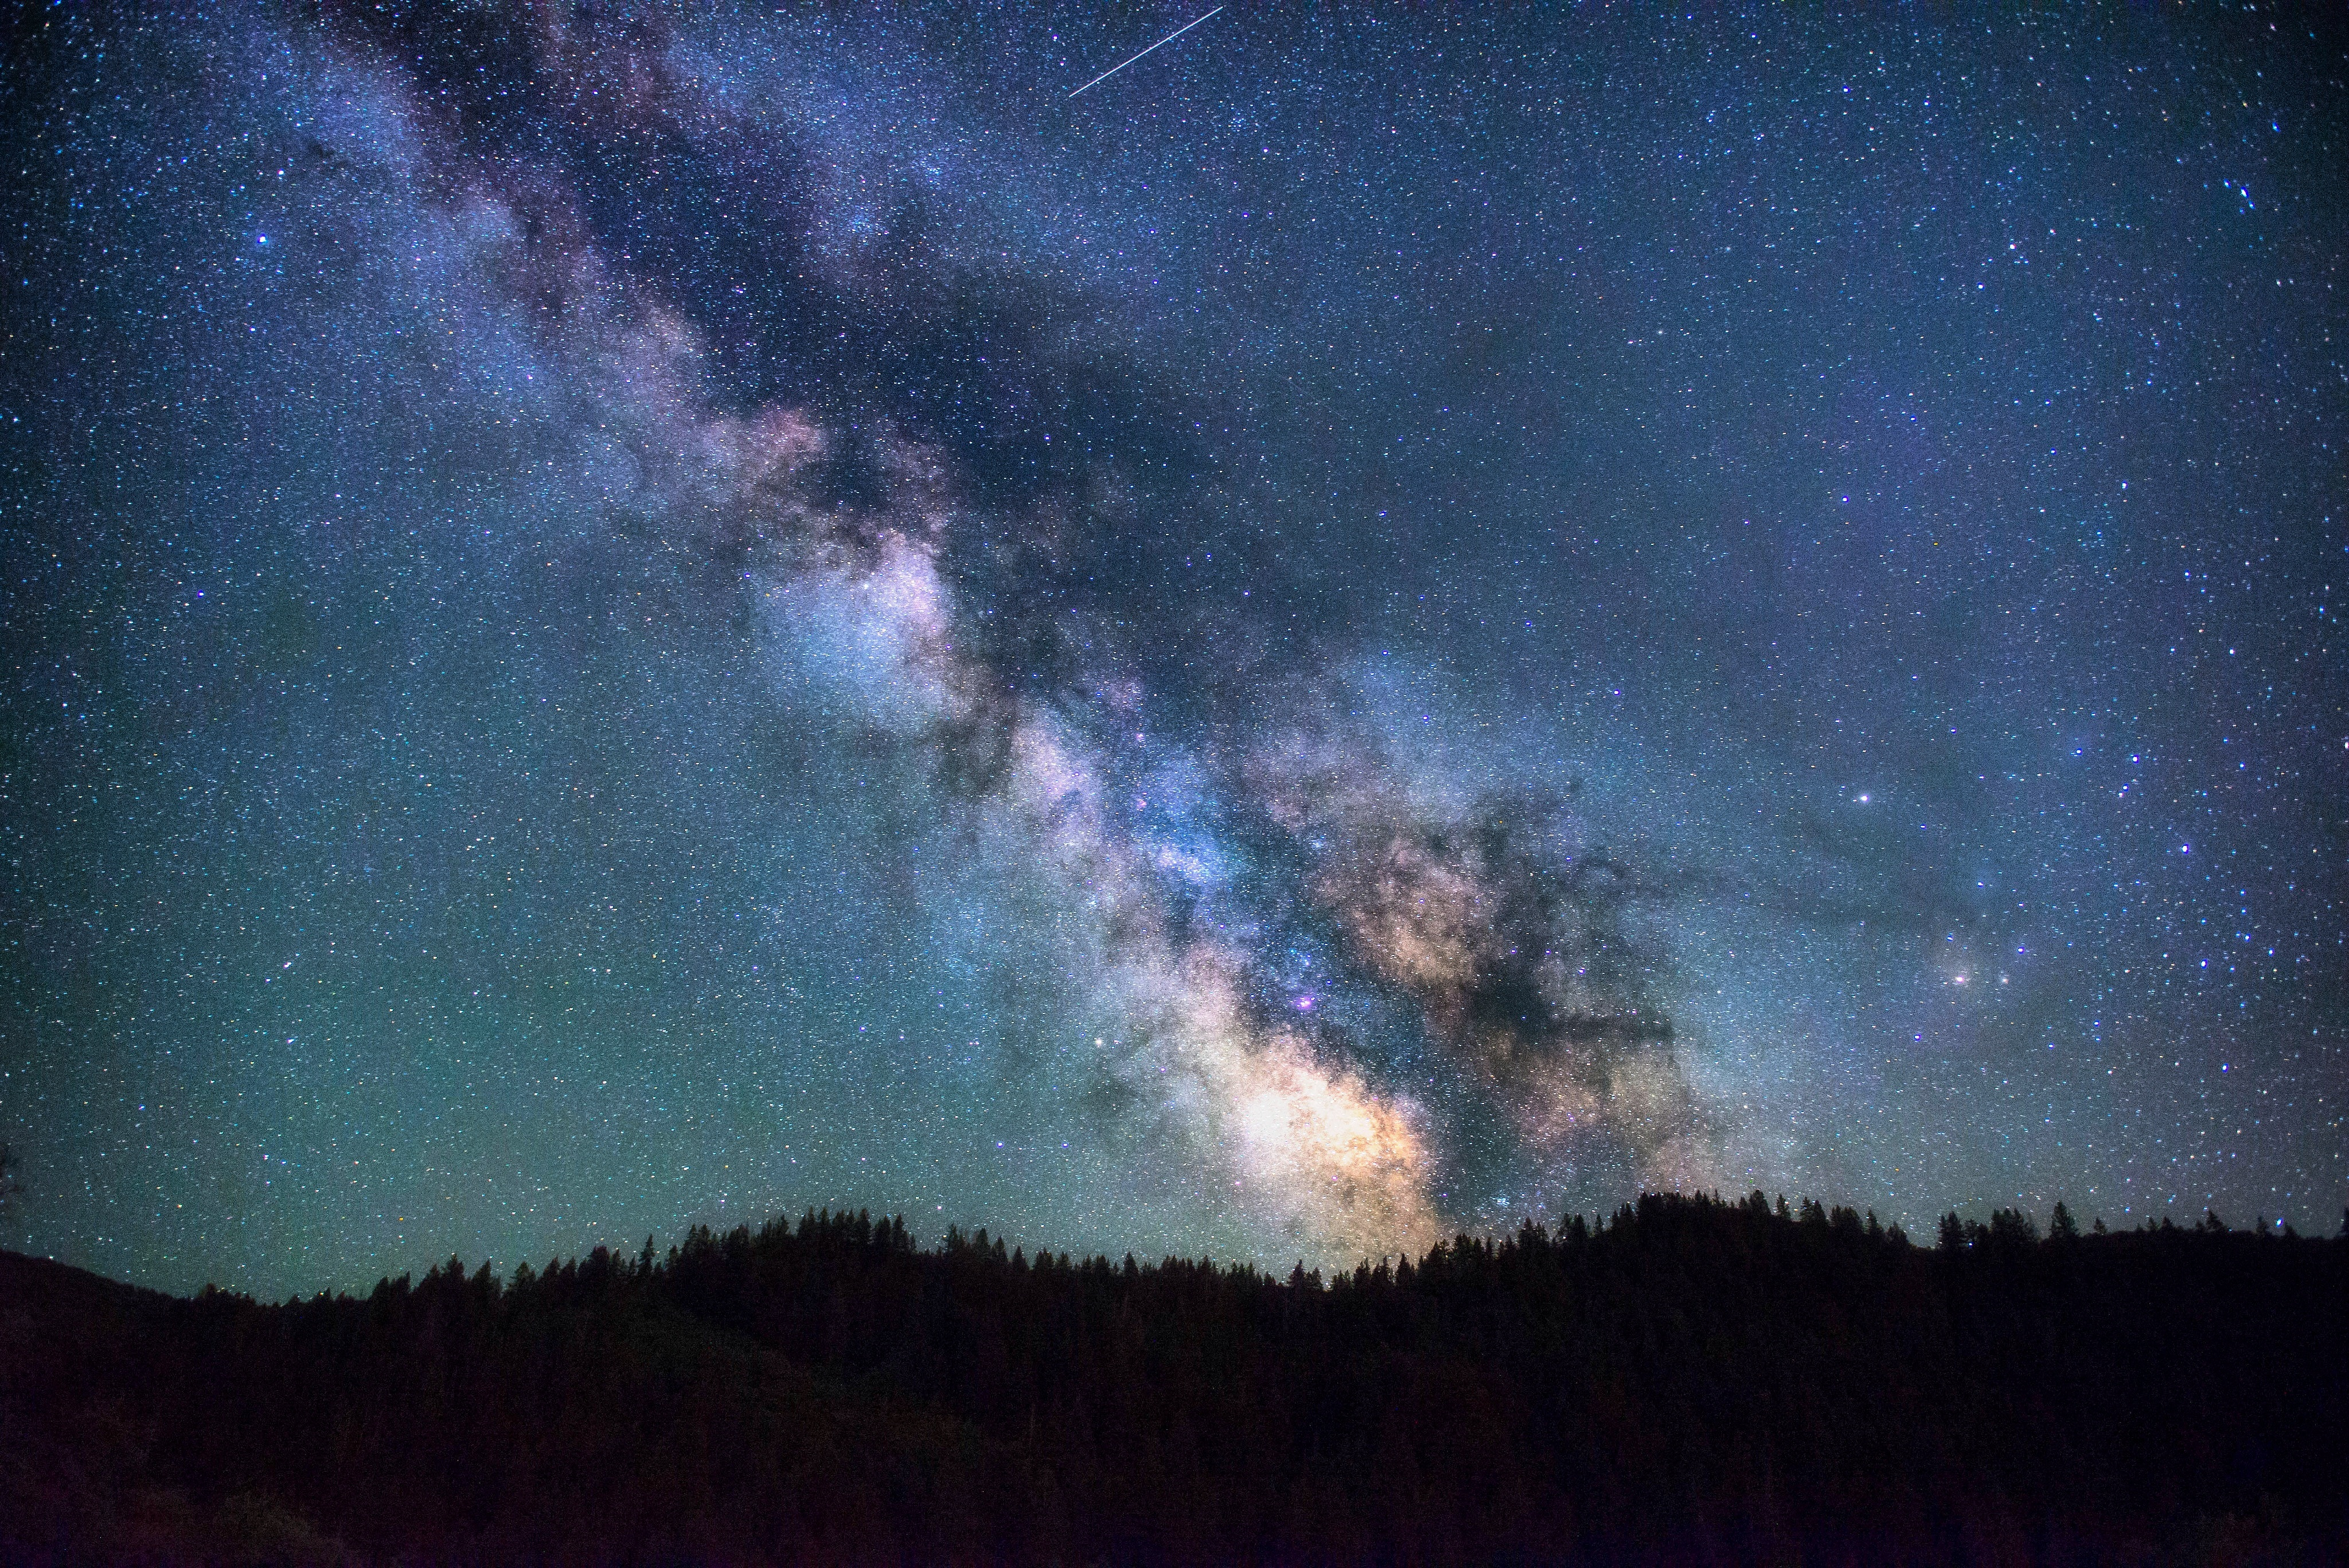 Amazing starry night in the forest, night, star, galaxy, trees, pines, mountains, starry, sky, night sky